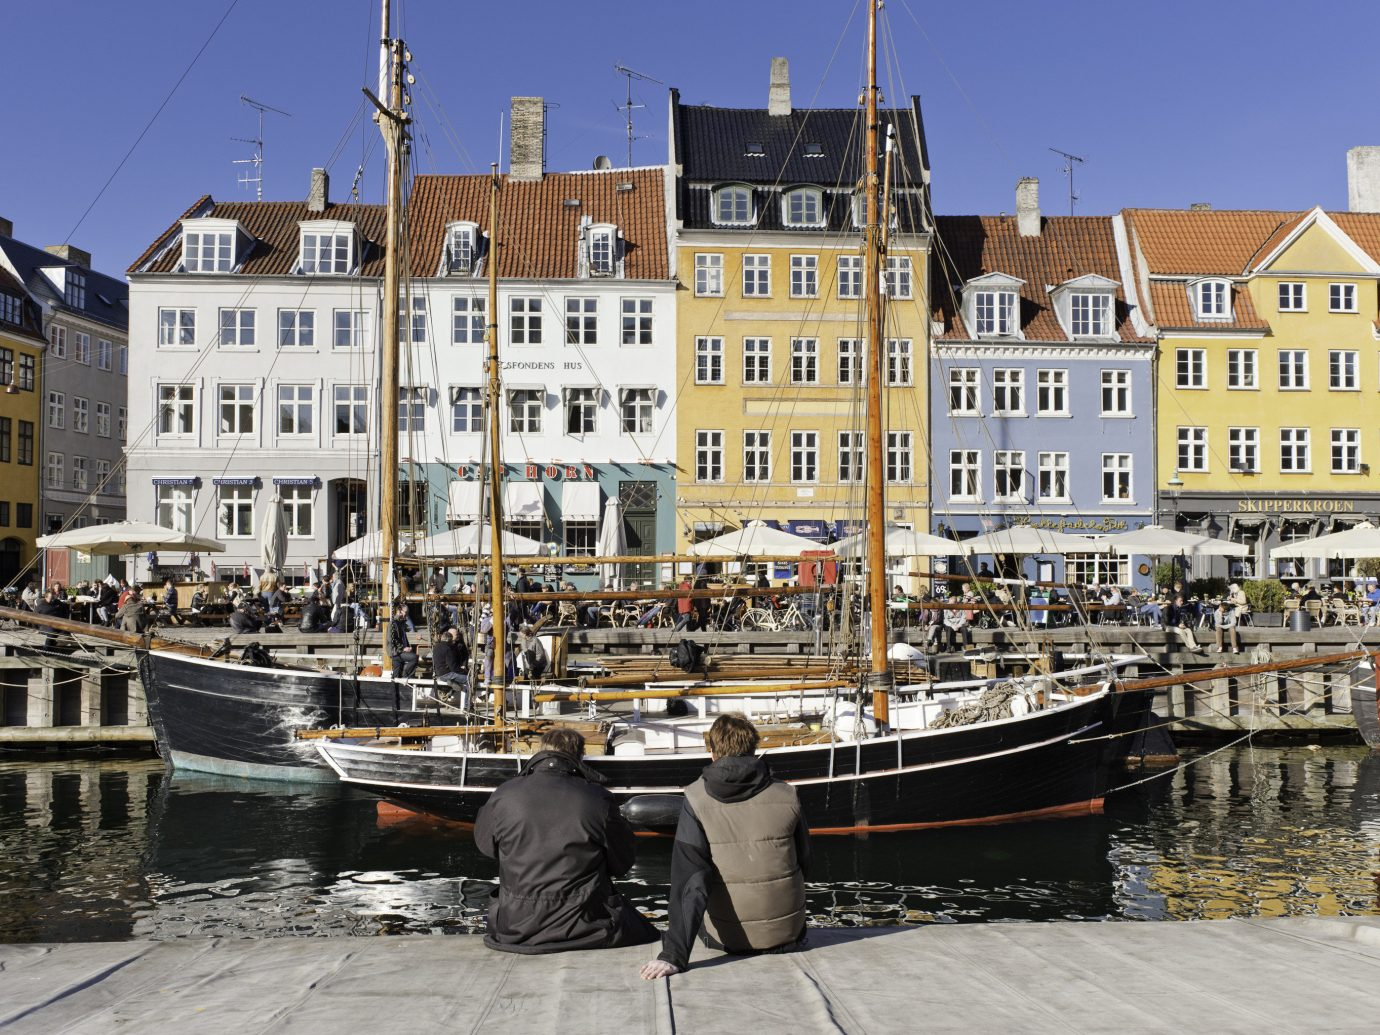 Copenhagen Denmark Trip Ideas waterway water water transportation Harbor Town City watercraft Boat channel marina Canal building ship vehicle port facade sky